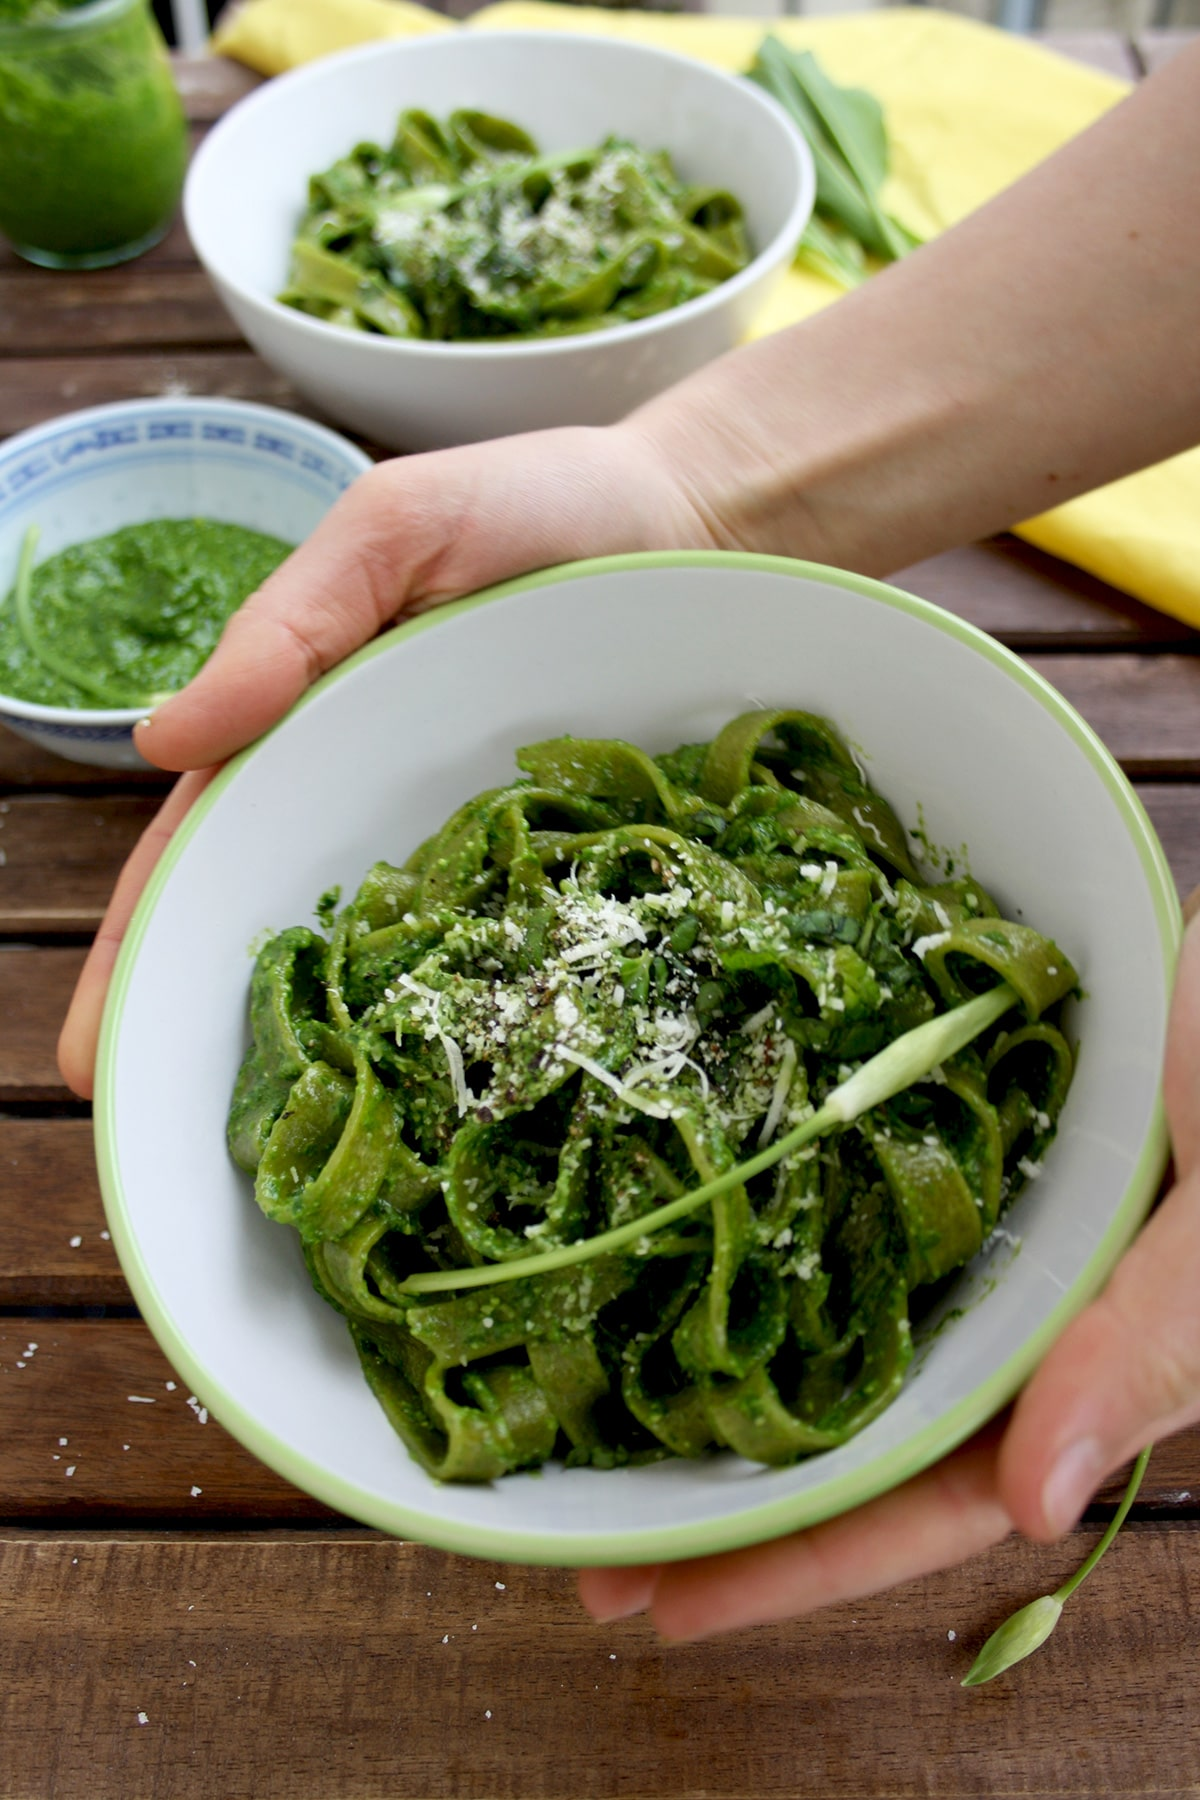 Easy Green Pesto Pasta - Holding It in Hands